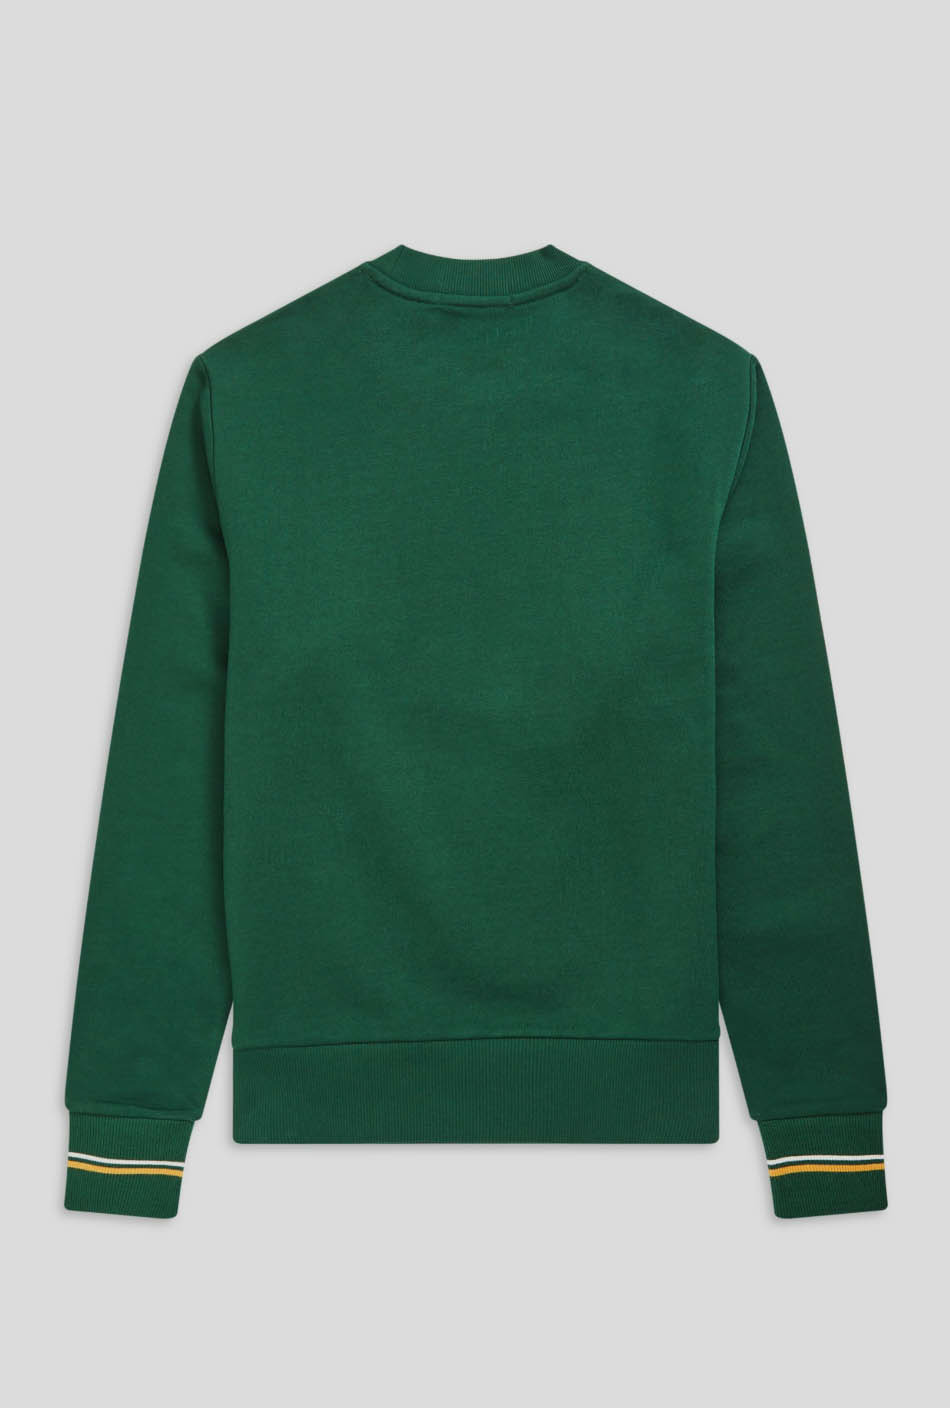 Fred Perry green sweatshirt